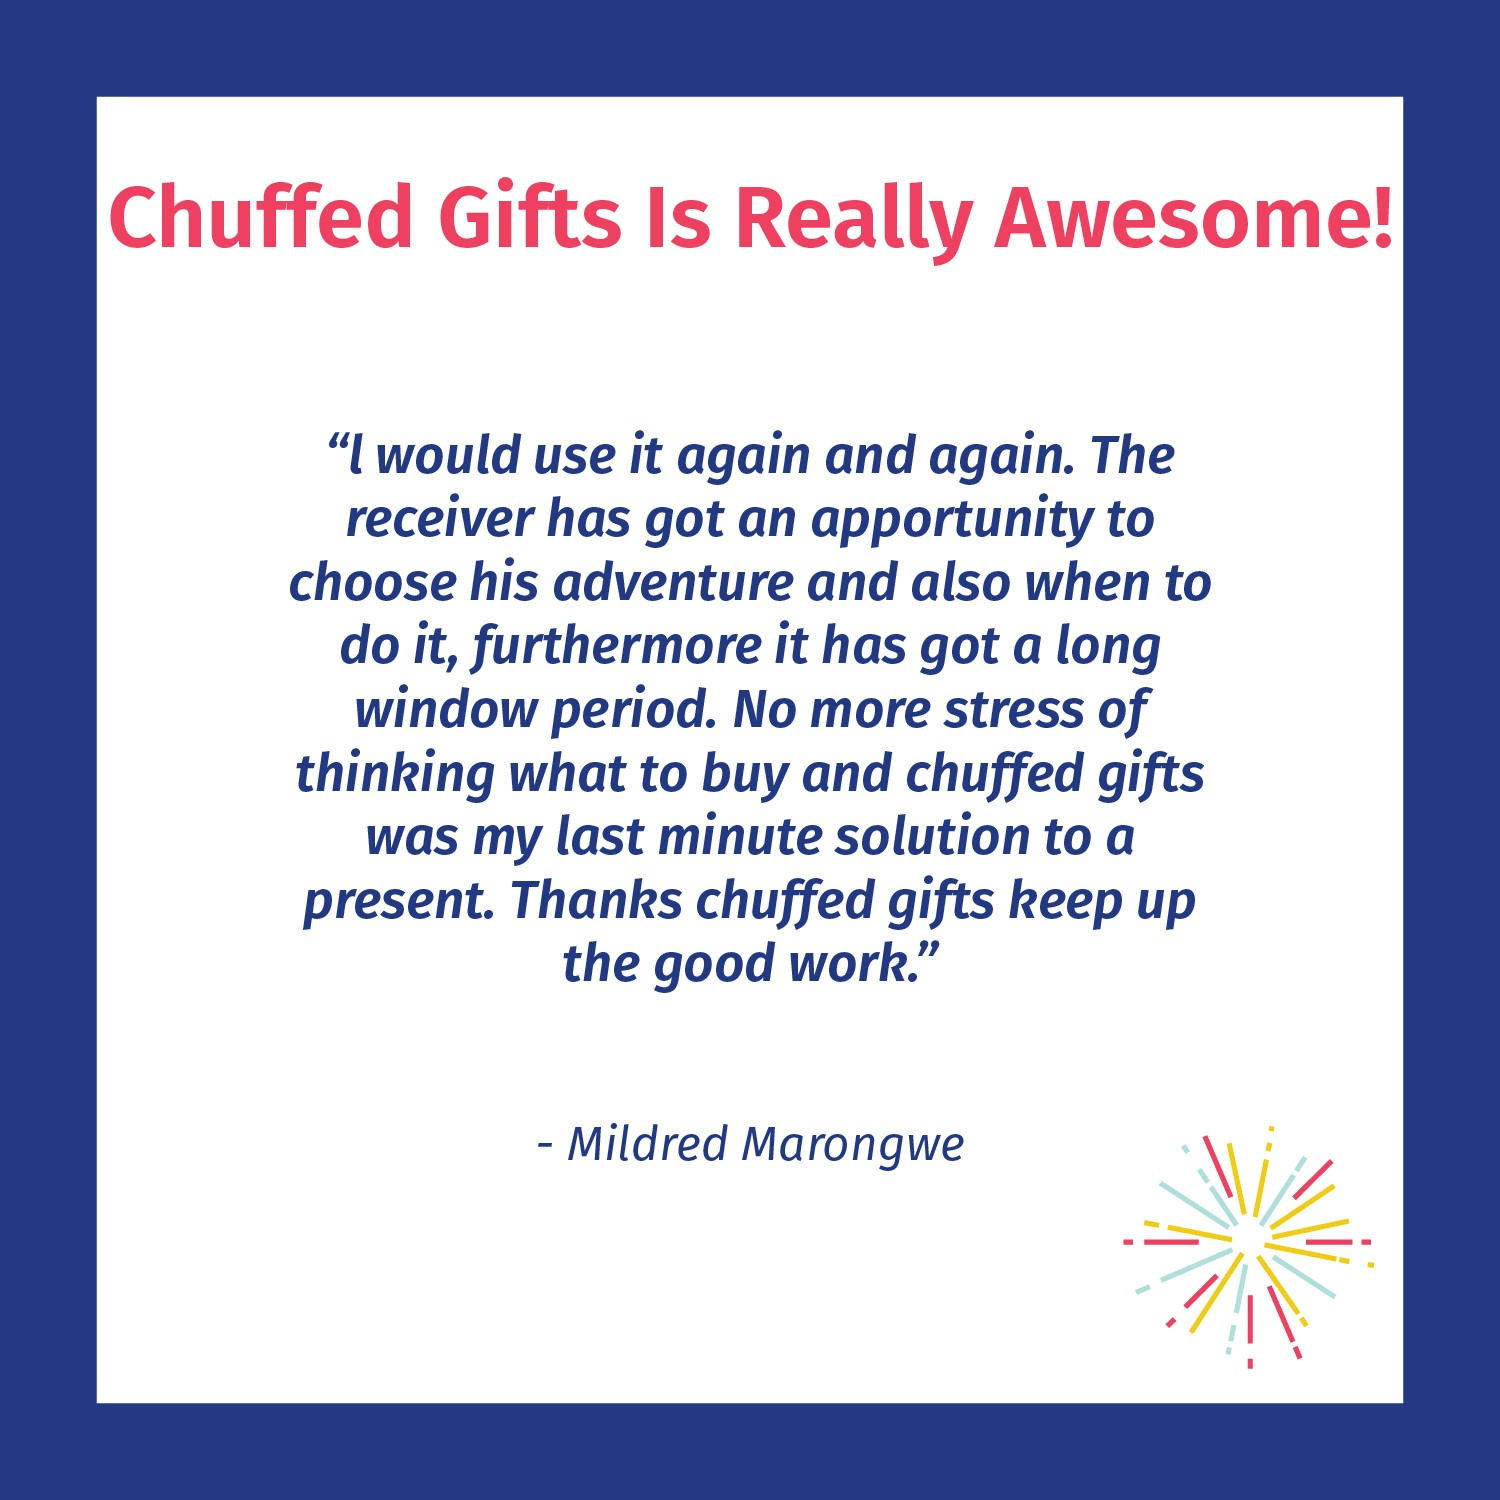 Chuffed Gifts is really awesome - Chuffed customer review